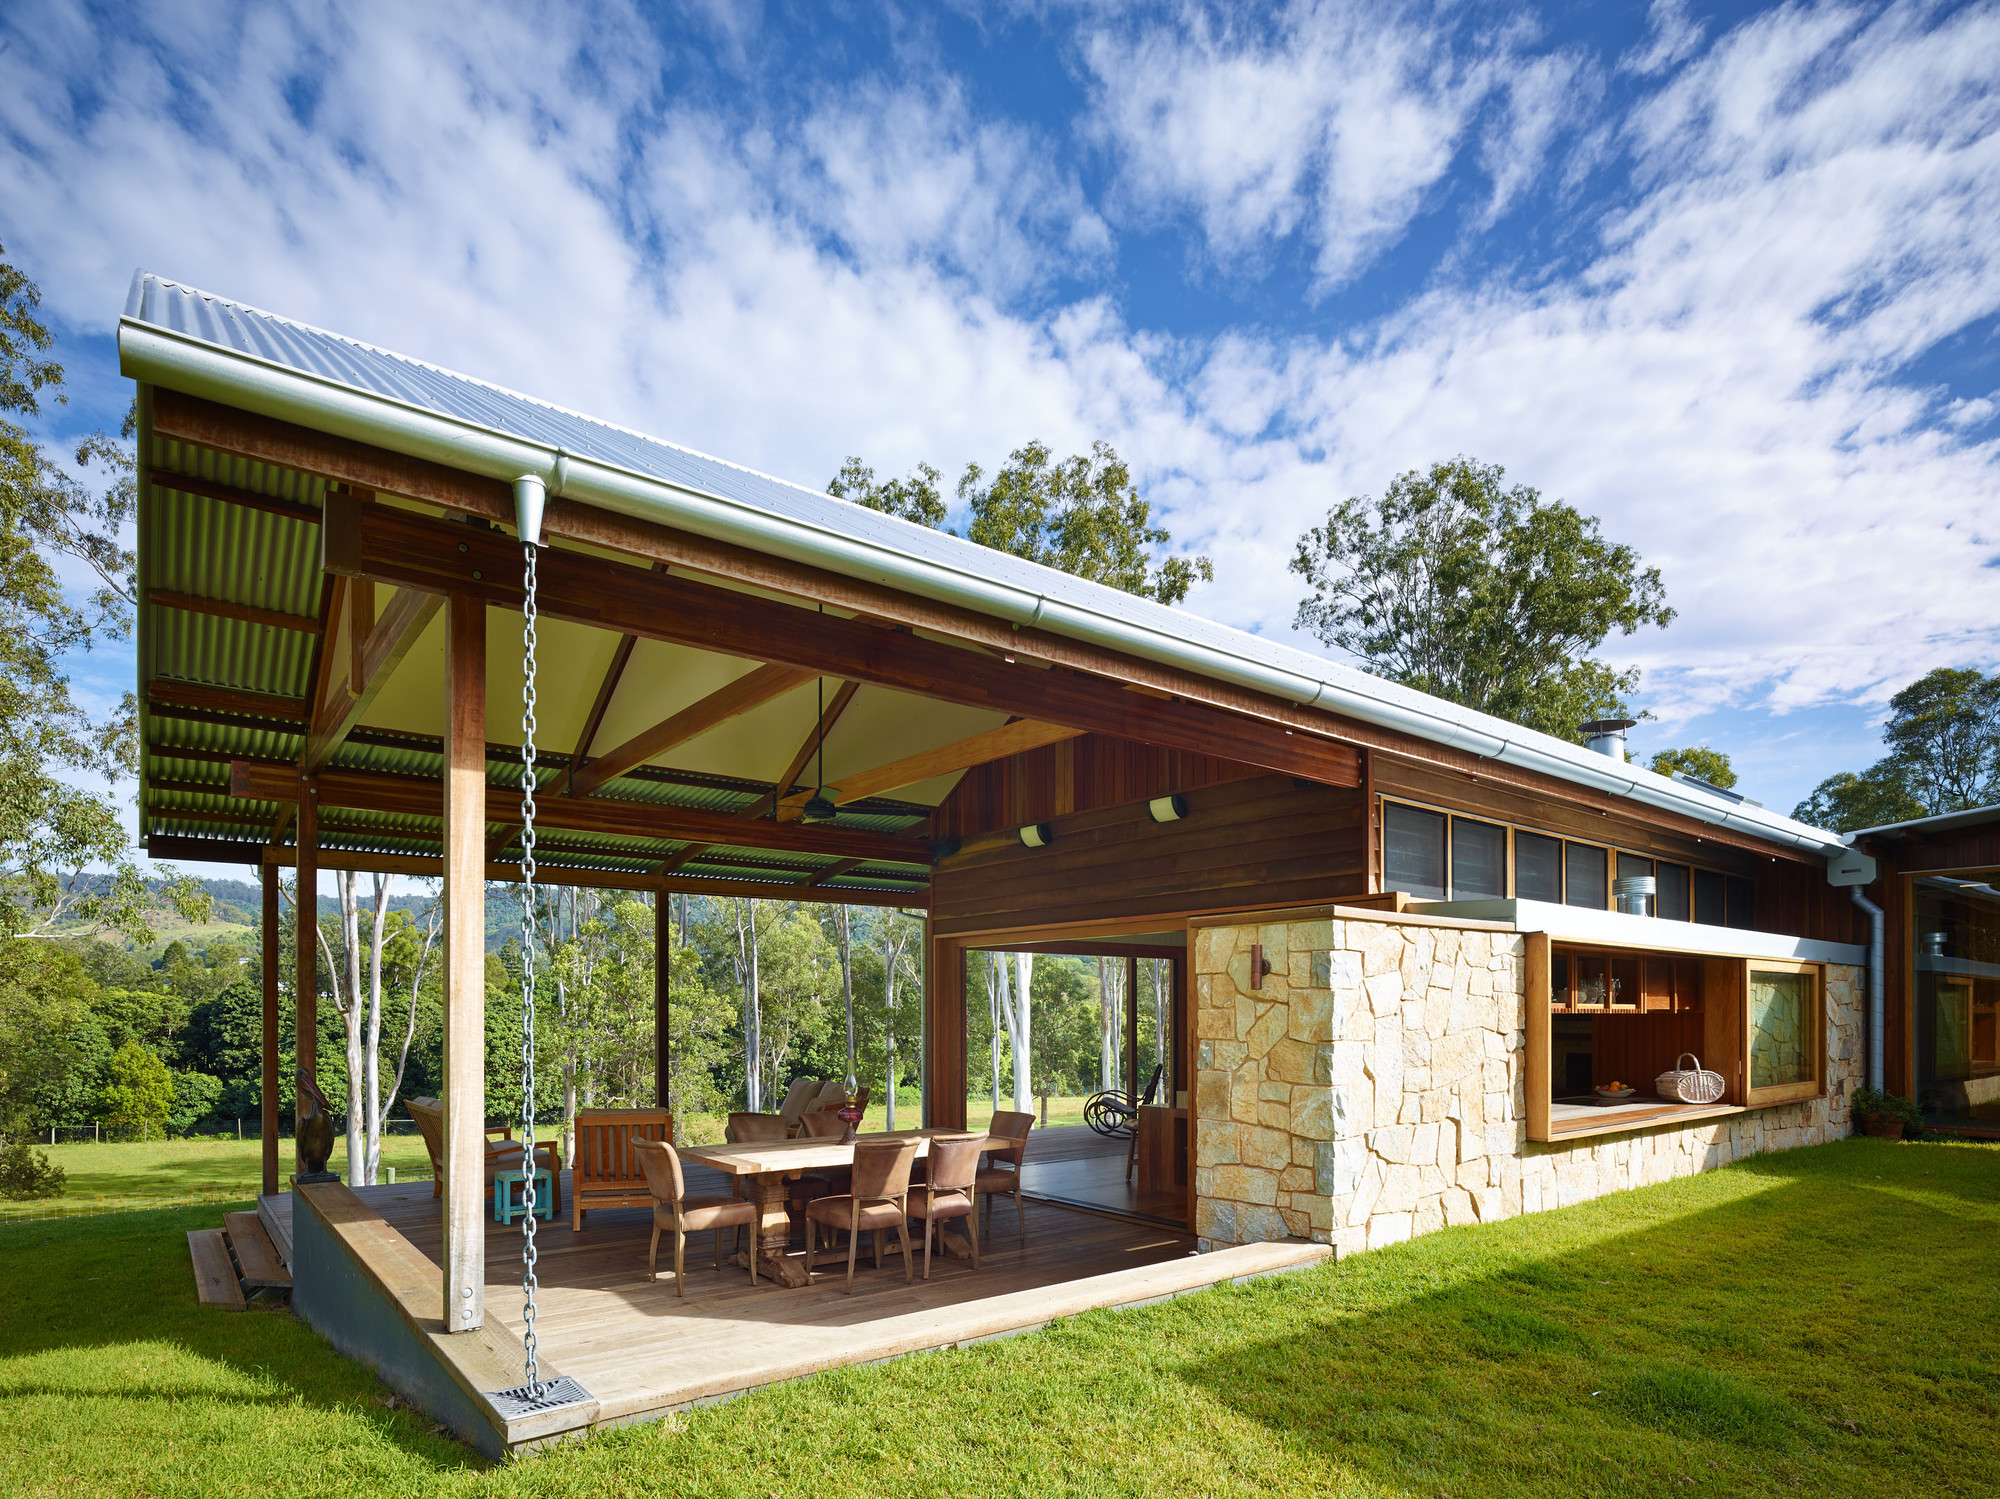 Hinterland house captures the spirit of rural australian style - Fachada de casas rusticas ...